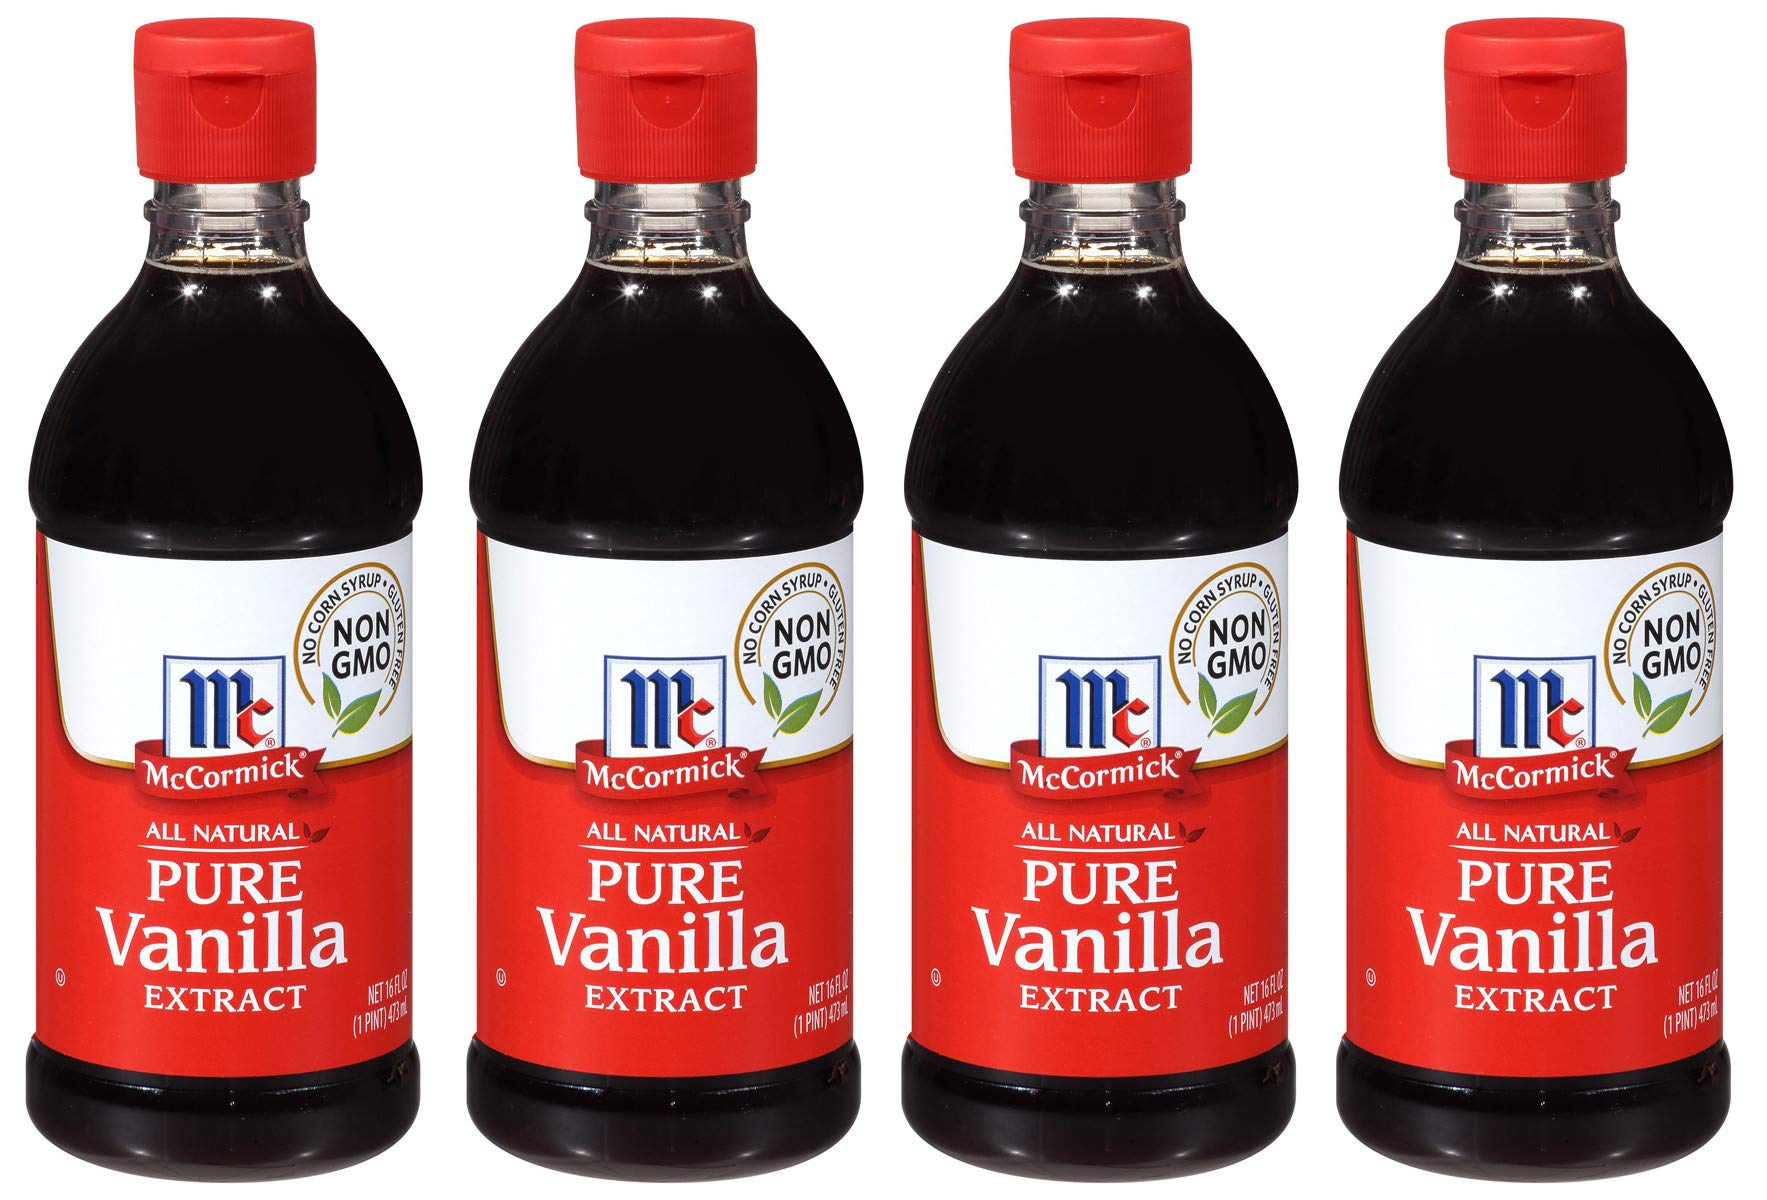 McCormick MJC All Natural Pure Vanilla Extract, Gluten-Free Vanilla, 4 Pack of 16 Oz by McCormick (Image #1)